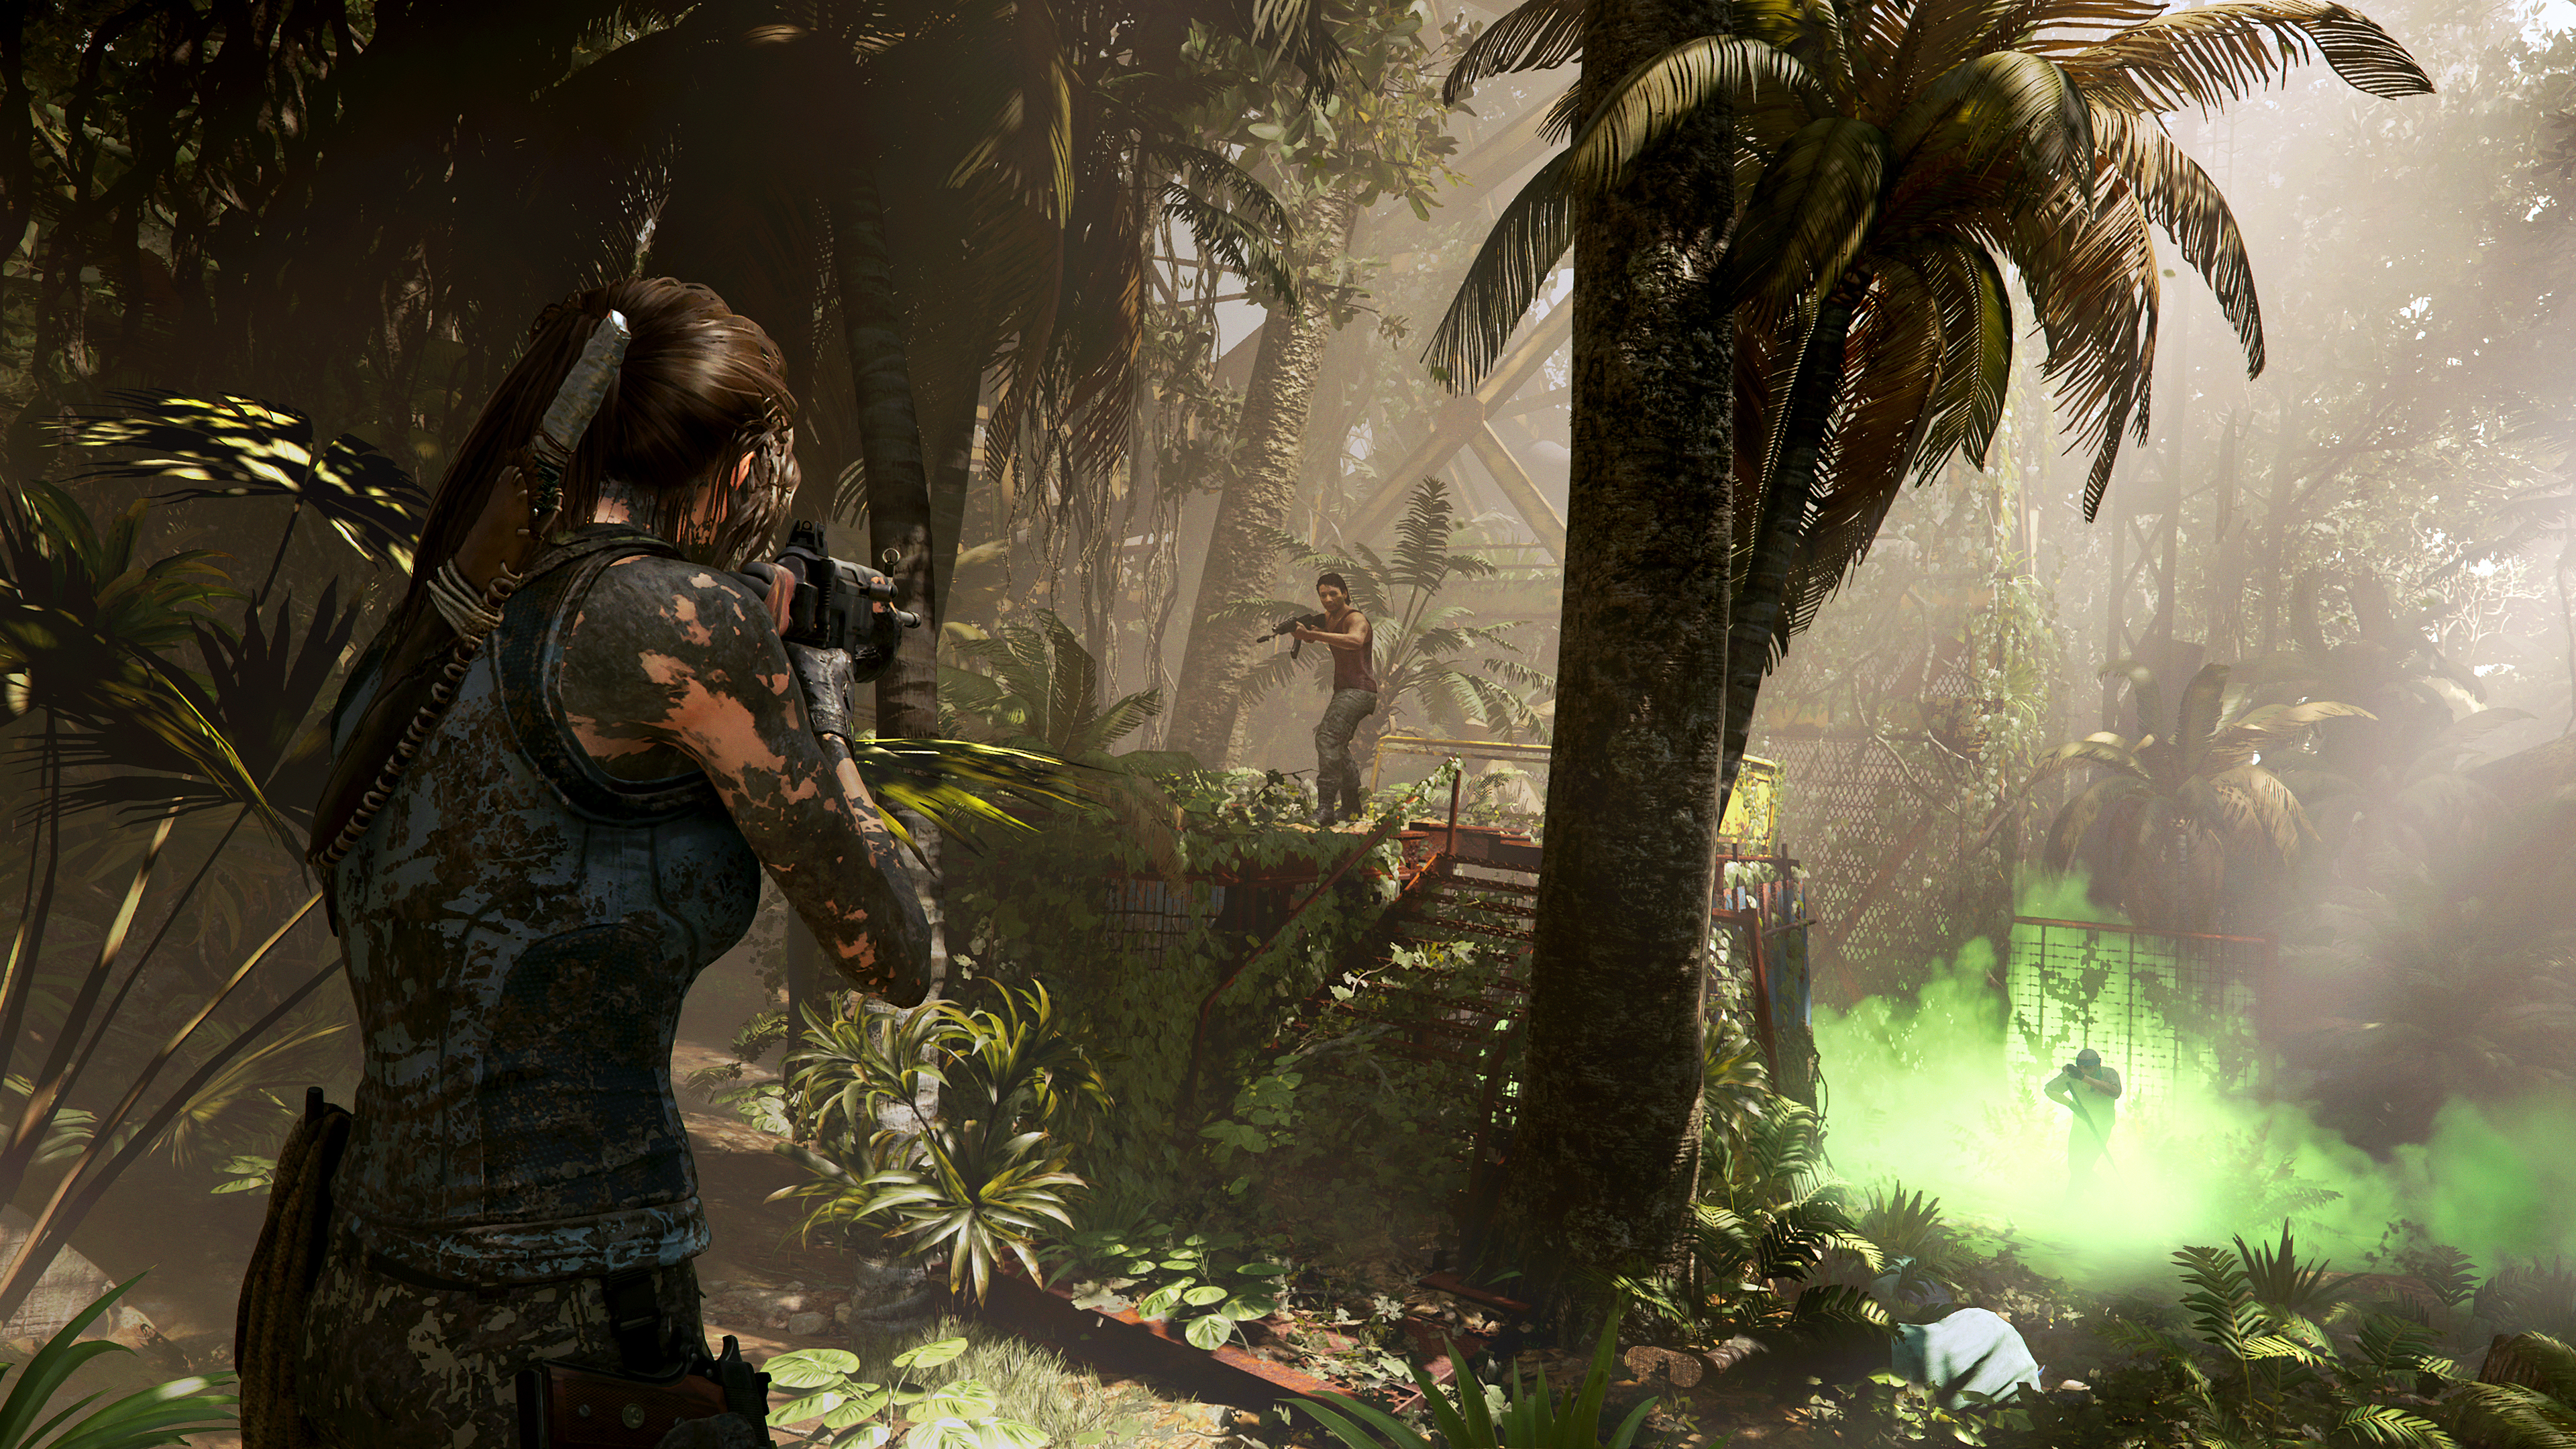 Gaming Shadow Of The Tomb Raider Dx12 The Amd Ryzen 5 2500x